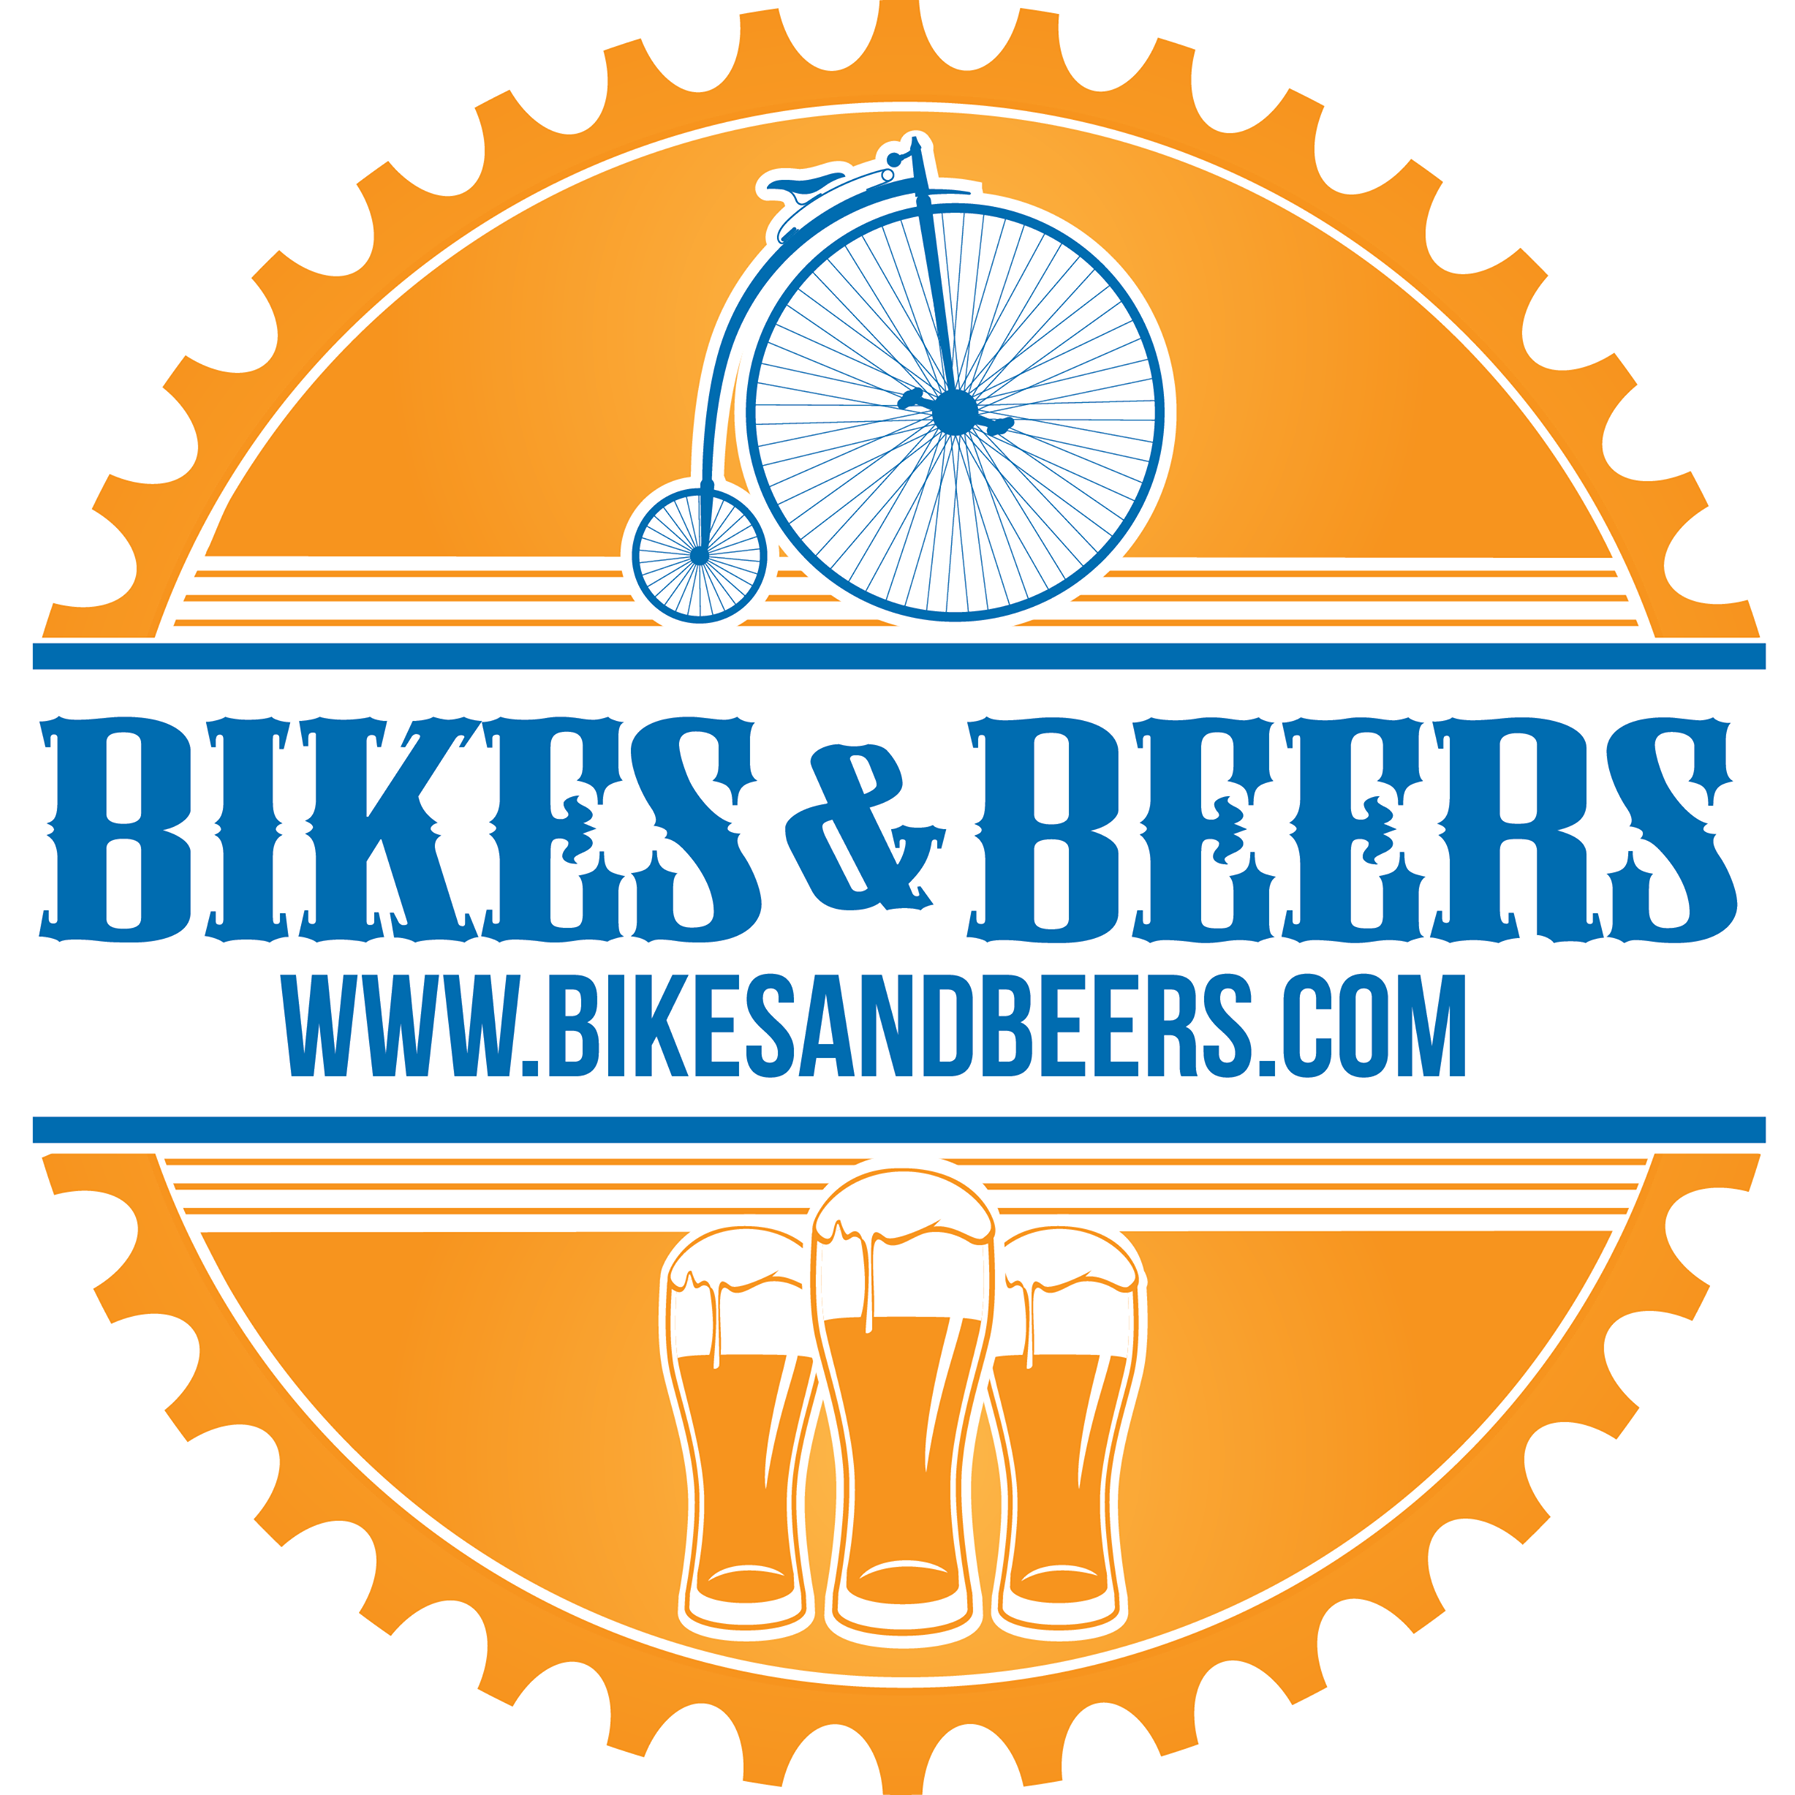 Union craft brewing bikes beers baltimore 2017 union for Union craft brewing baltimore md